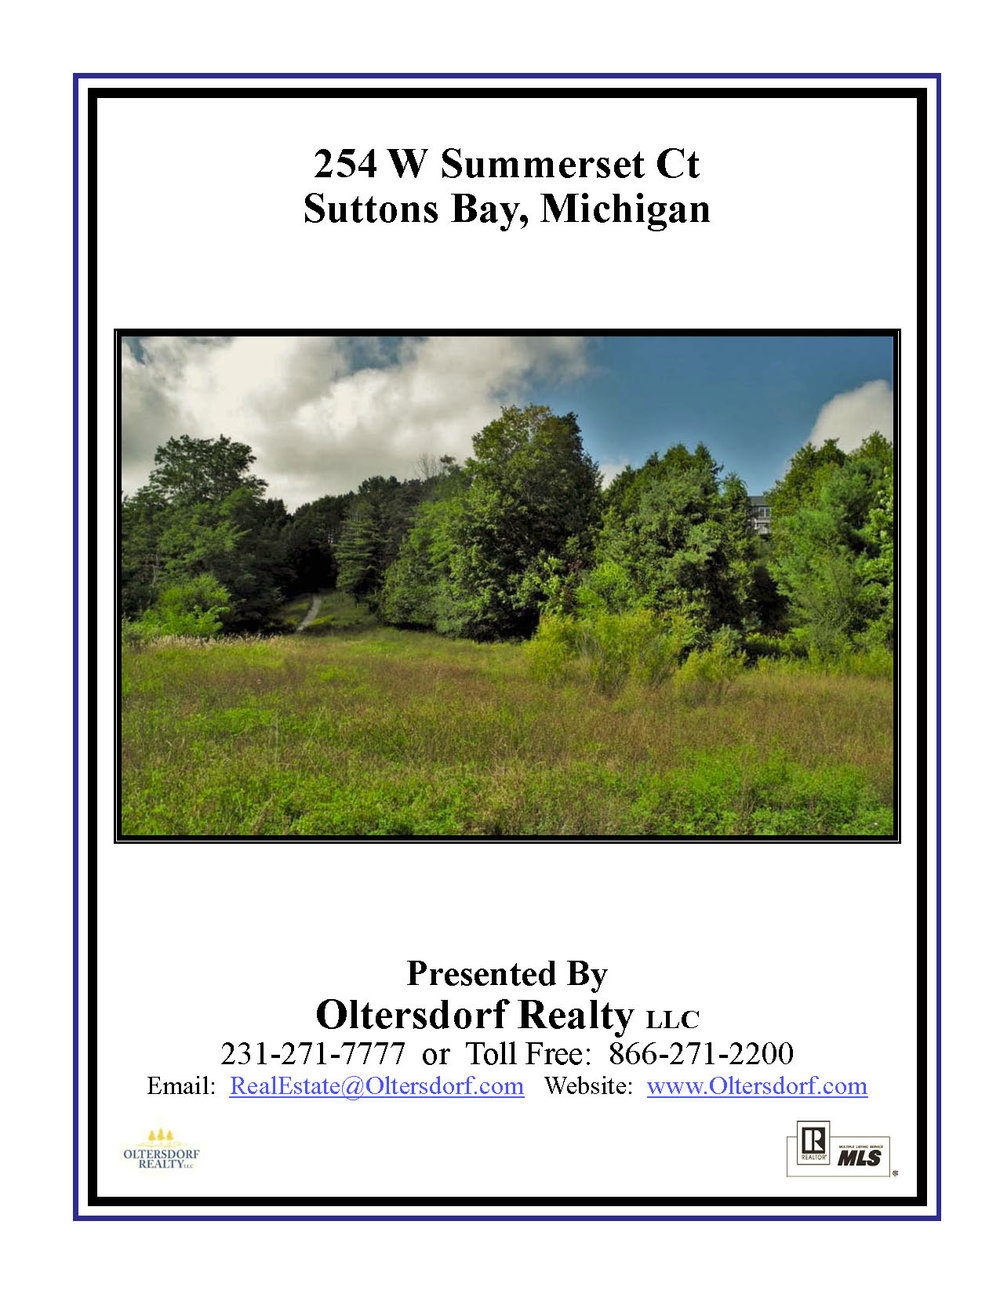 254 W Summerset Court, Village of Suttons Bay vacant lot for sale by Oltersdorf Realty, Suttons Bay Realtors - Marketing Packet (1).jpg